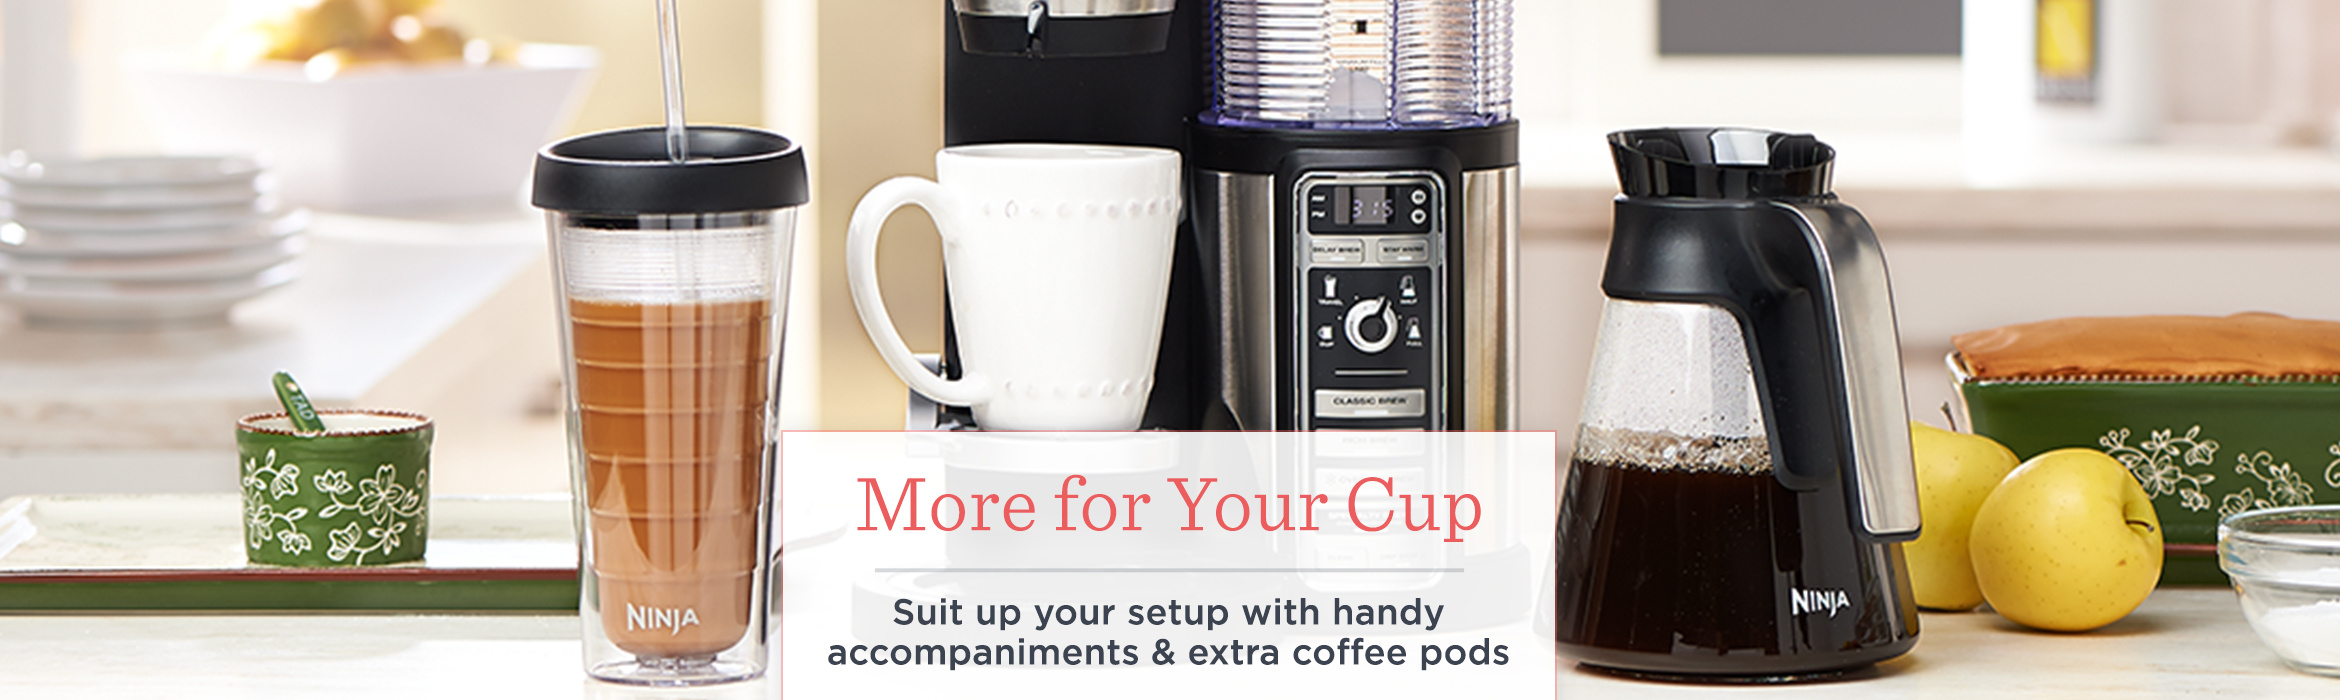 More for Your Cup. Suit up your setup with  handy accompaniments & extra coffee pods.